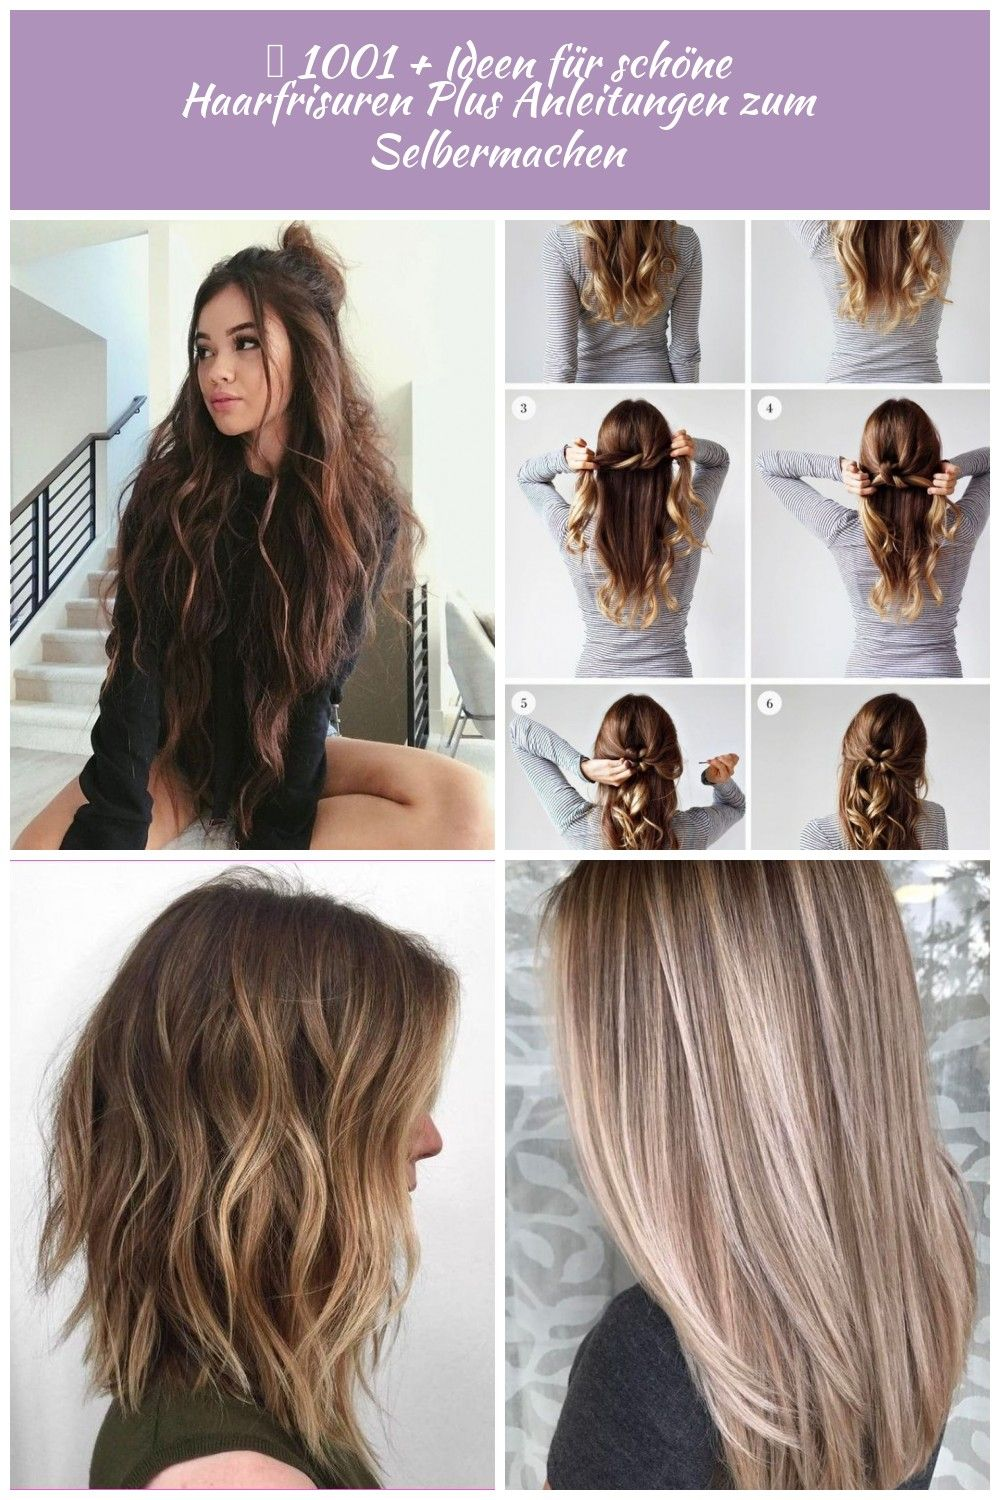 52 Most Easy And Pretty Hairstyle Design For Medium Length Hair Diy Hairstyle 52 Most Easy An Medium Length Hair Styles Pretty Hairstyles Diy Hairstyles